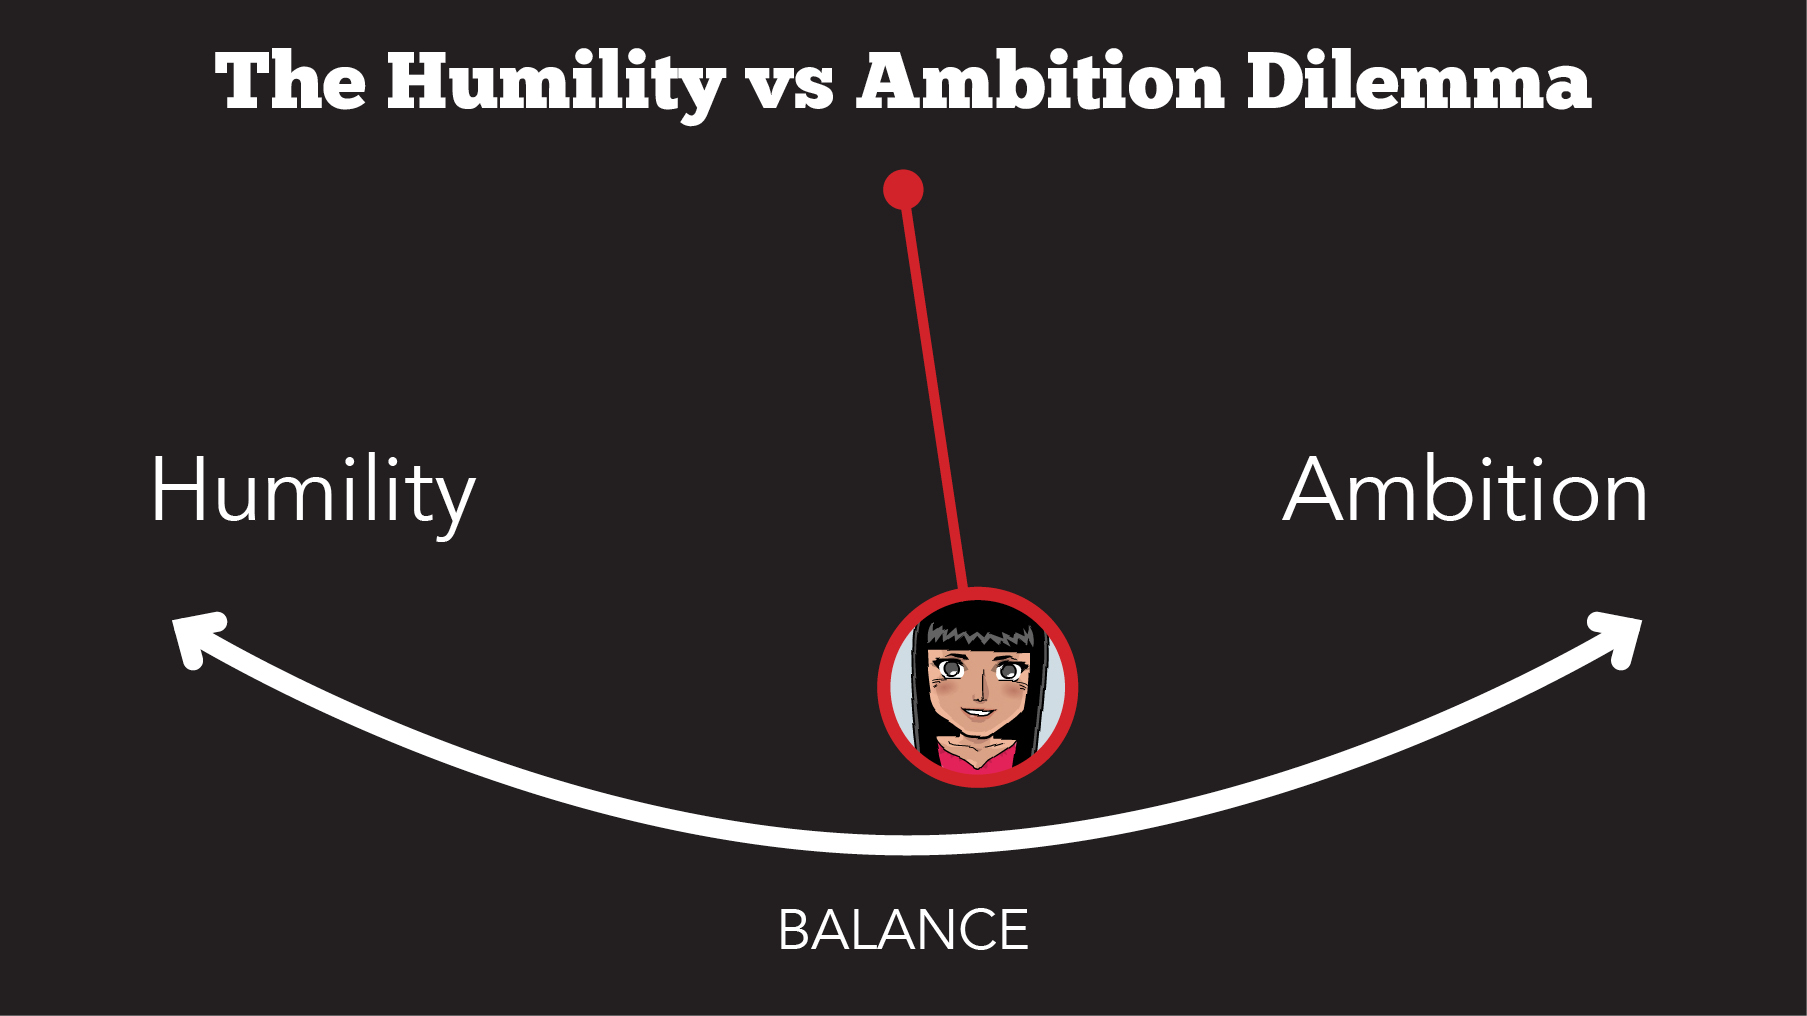 humility vs Ambition Dilemma